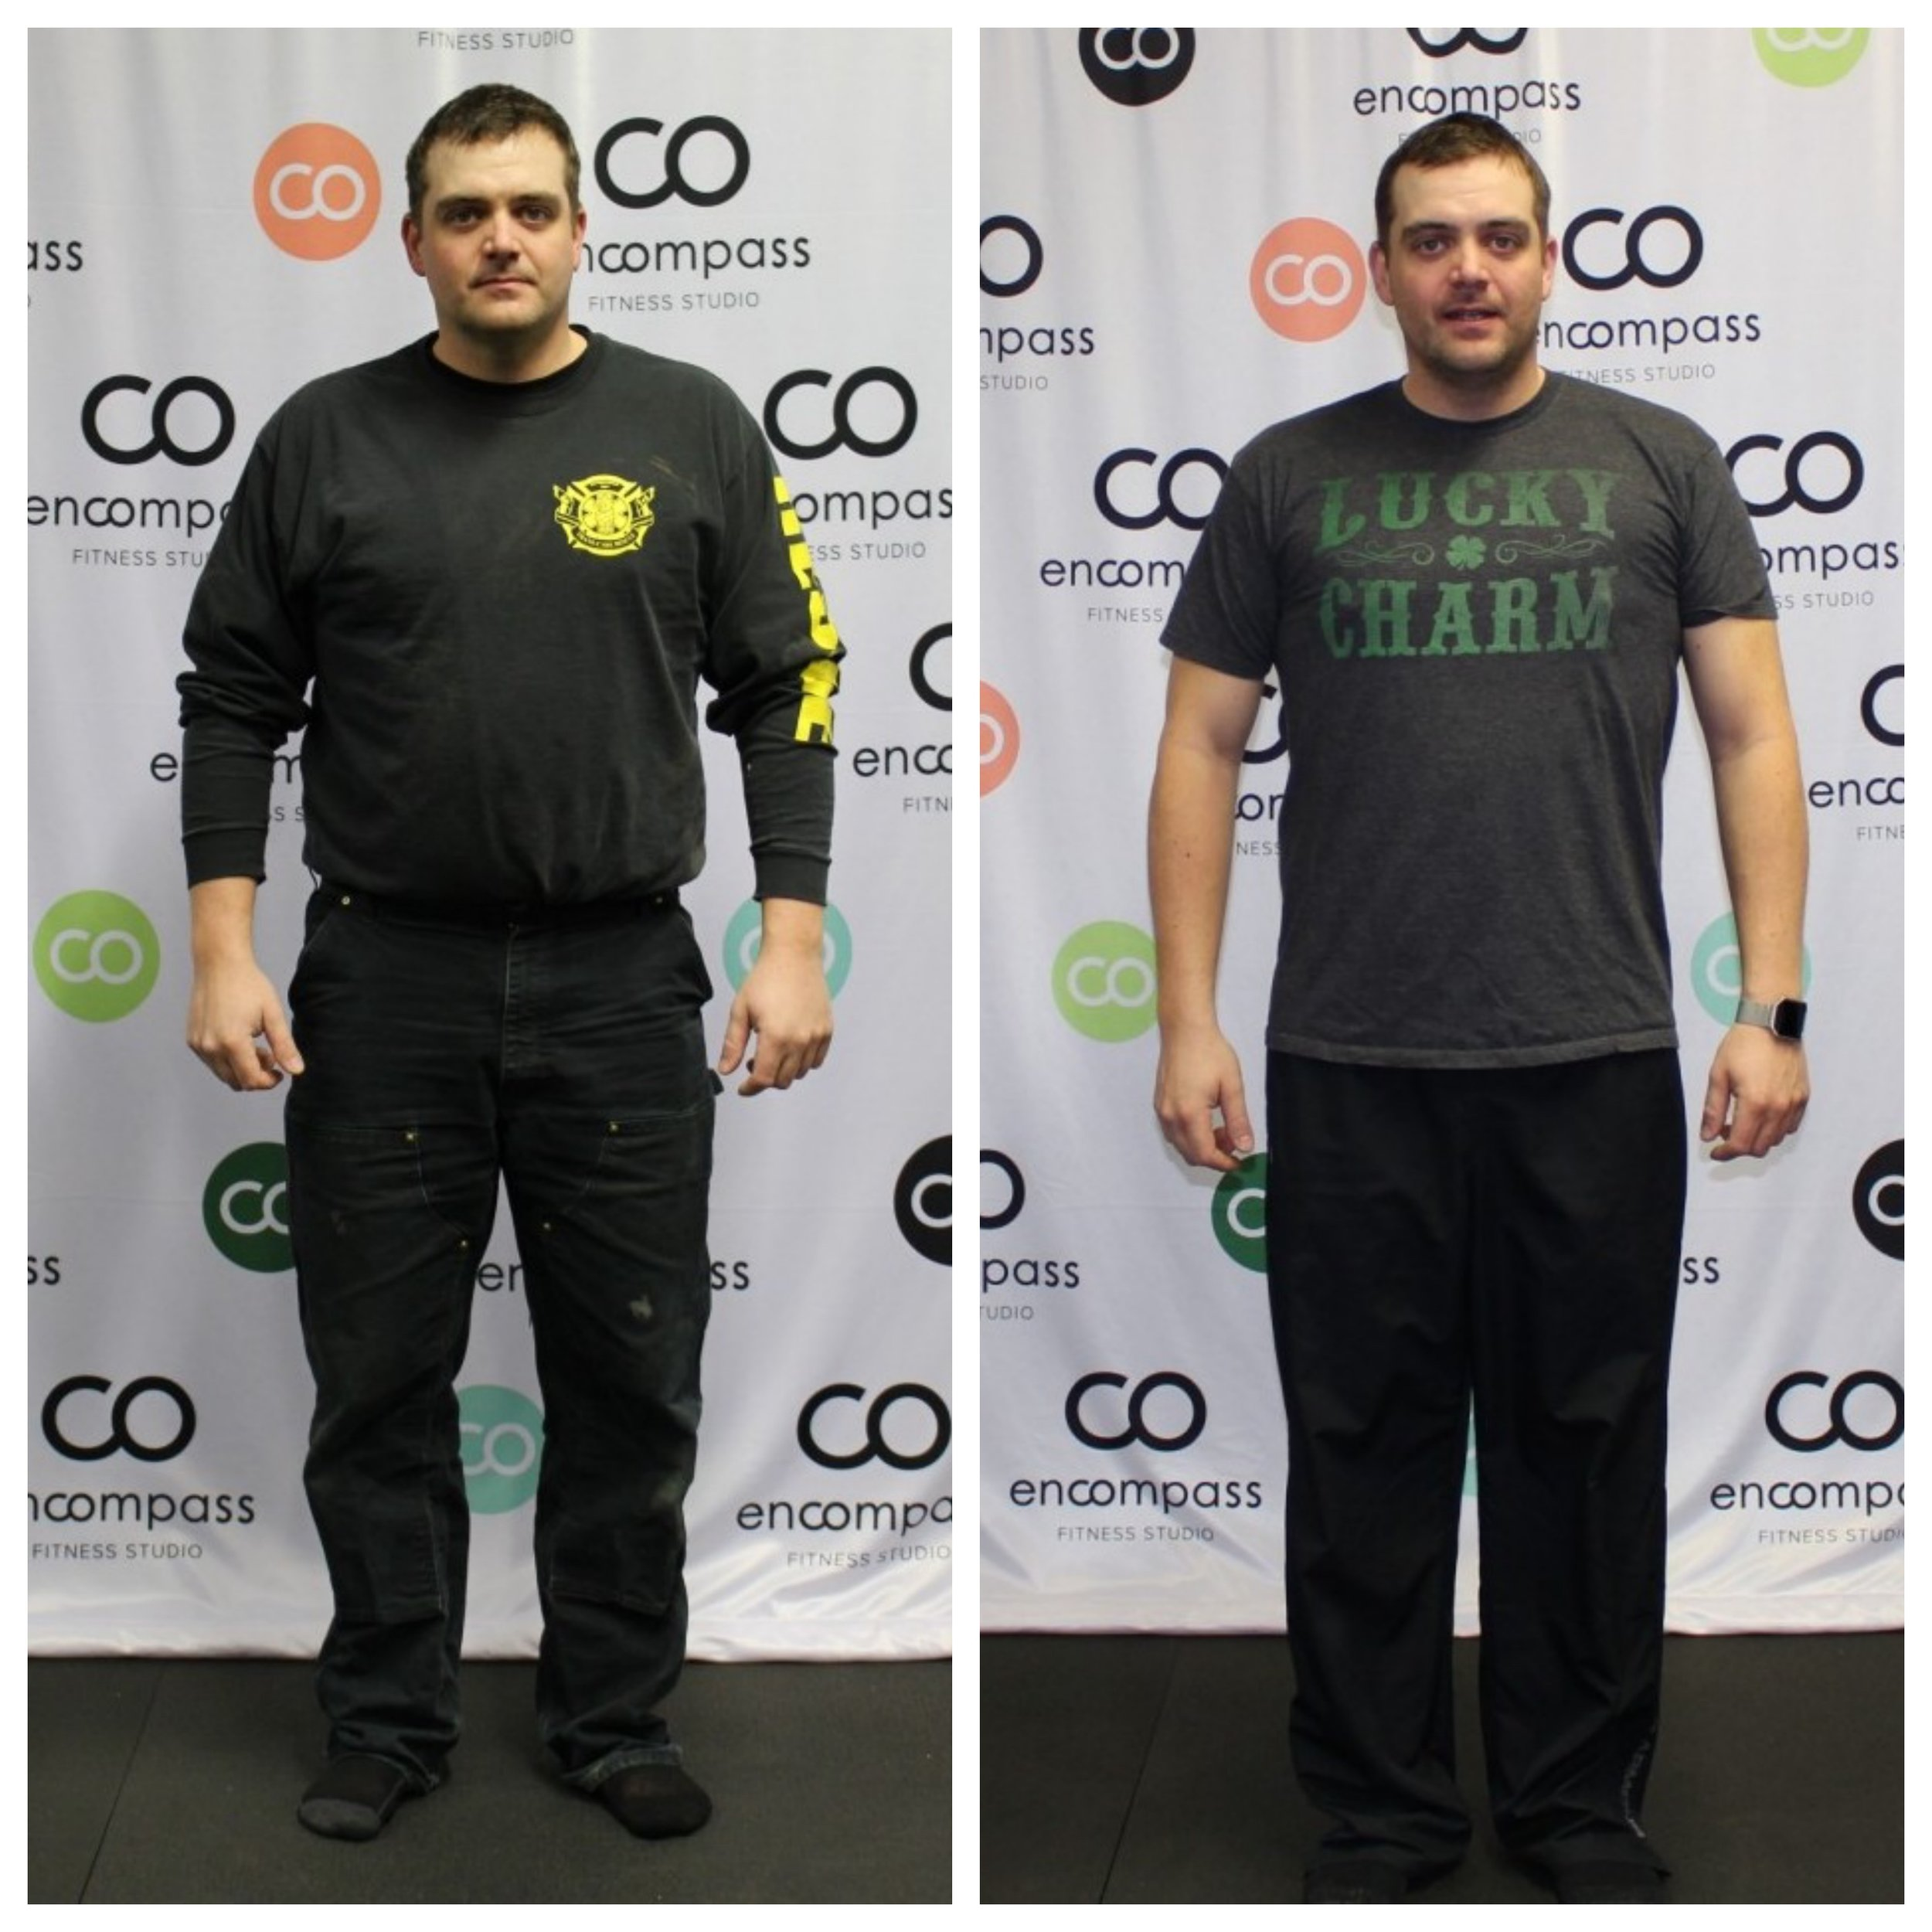 Logan Bomberak was the winner our of last KickStart, losing 27 pounds in only 28 days. Here he shares his story and experience on becoming healthier and how it's impacted his body, energy, and workouts.